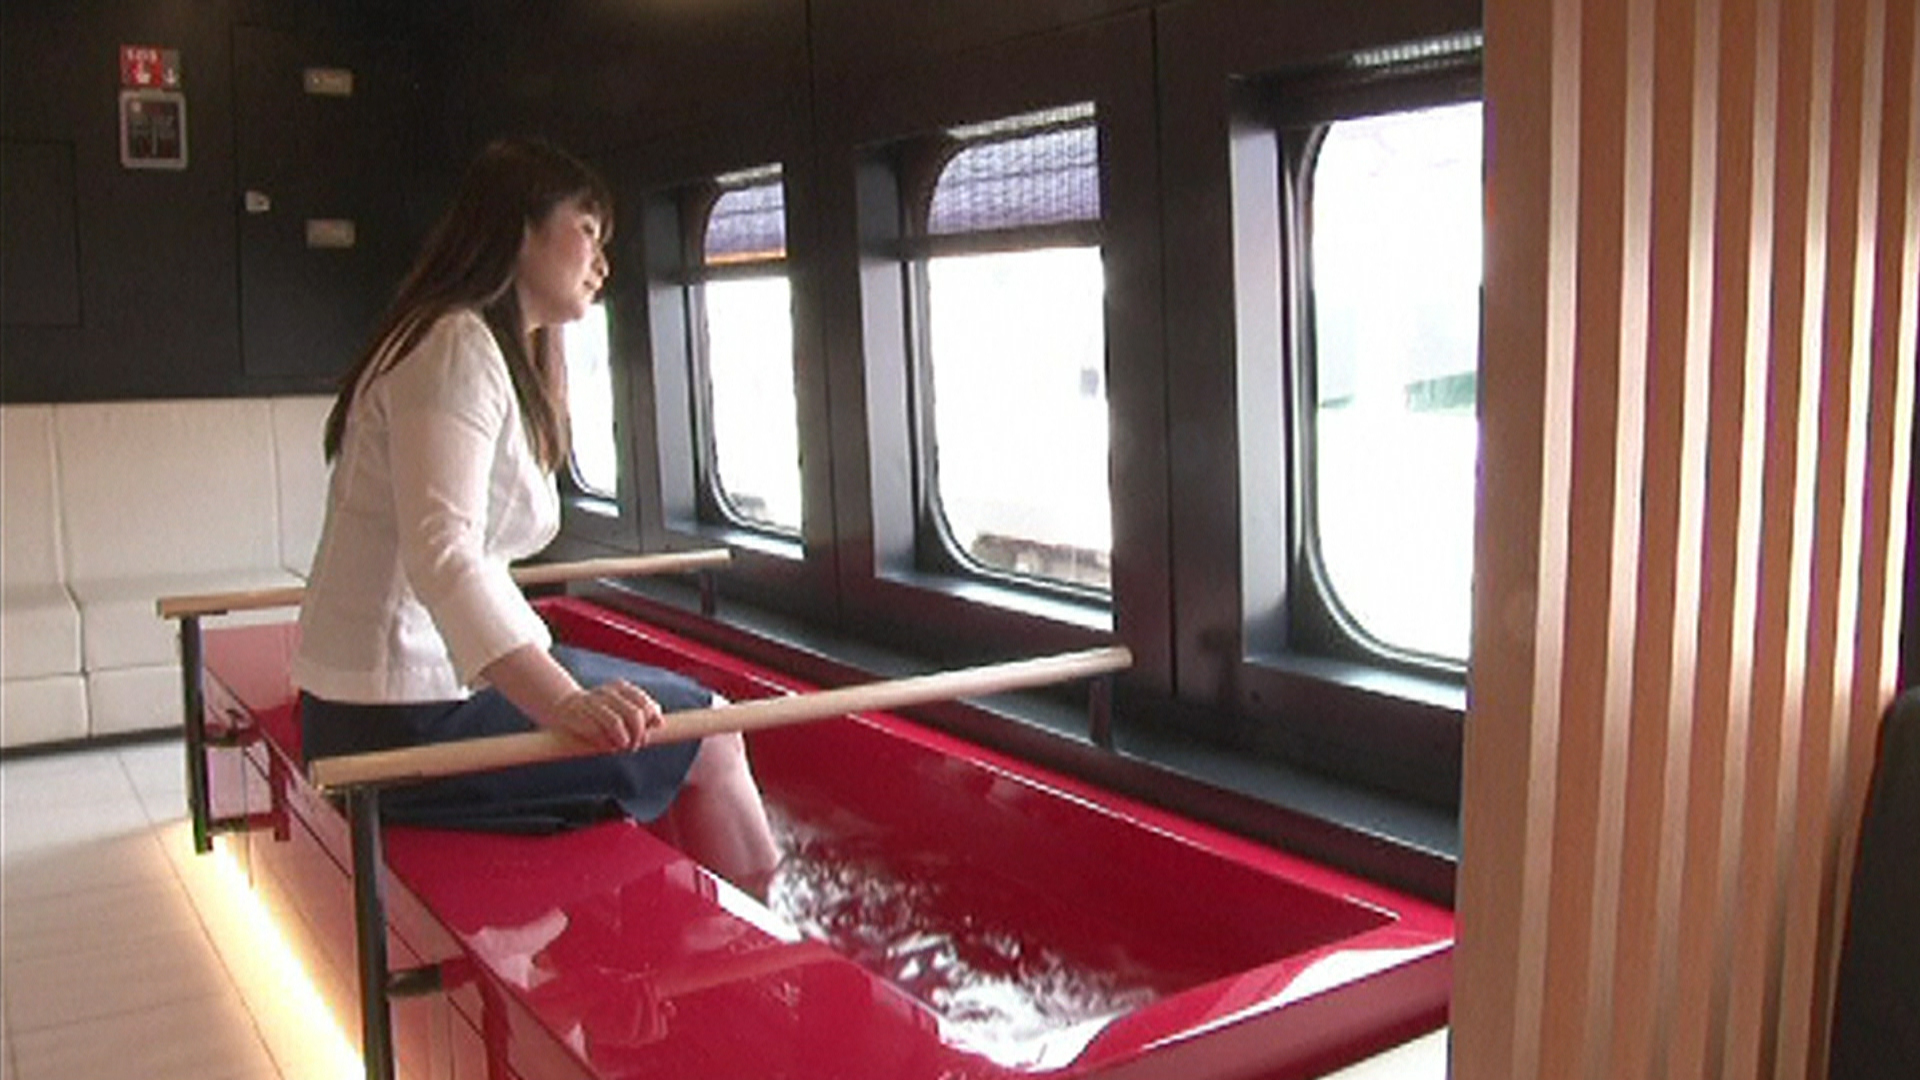 Japanese Bullet Train Features Foot Baths Today Com